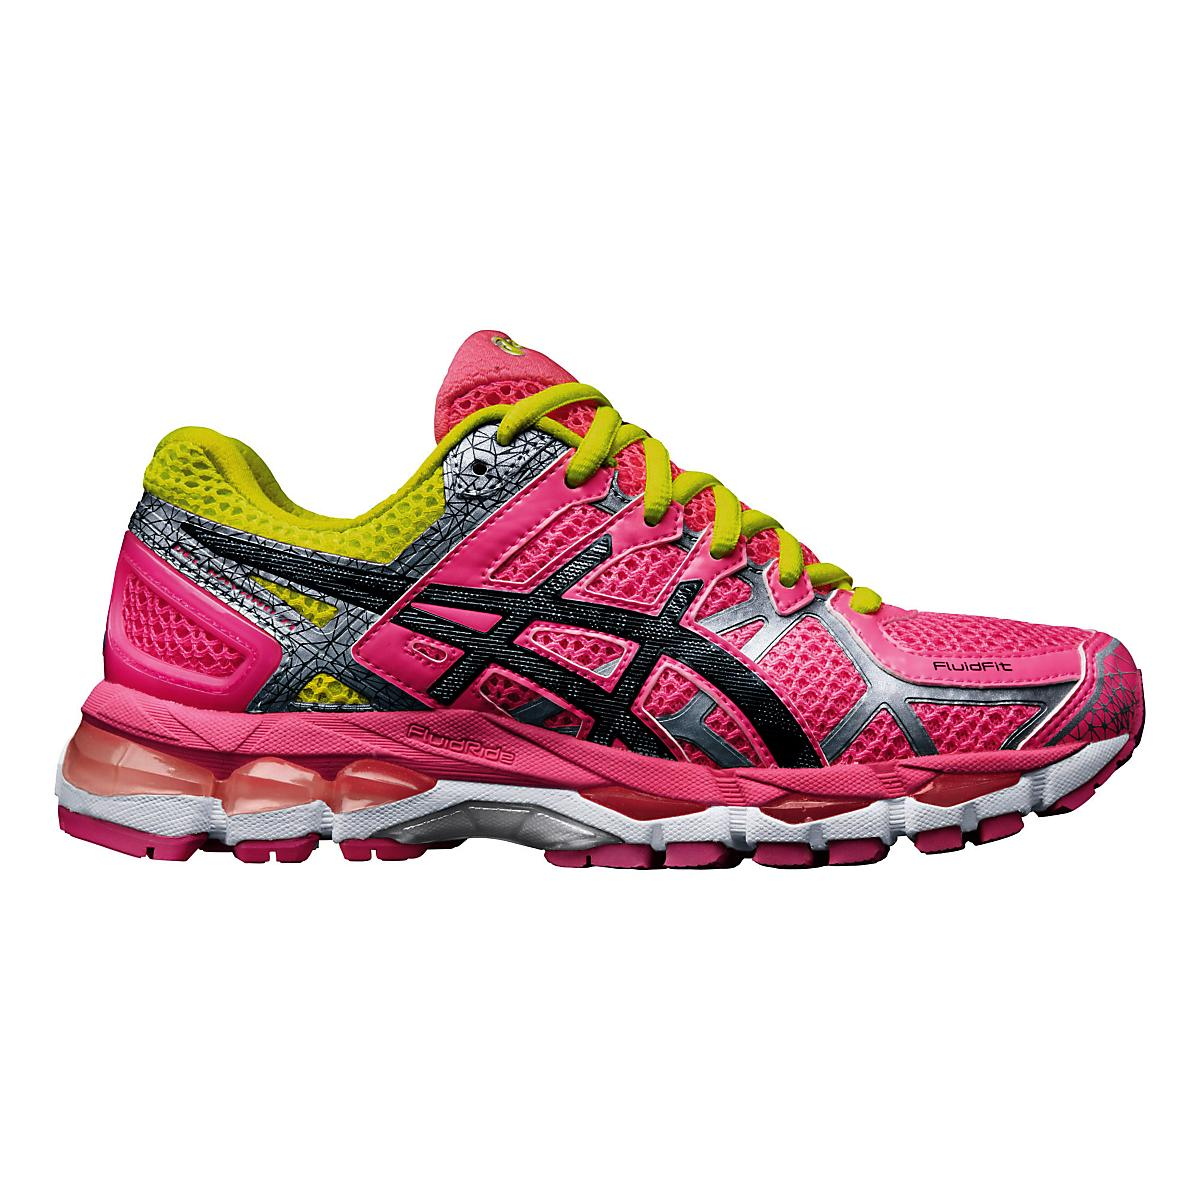 womens asics gel kayano 21 lite show running shoe at road runner sports. Black Bedroom Furniture Sets. Home Design Ideas